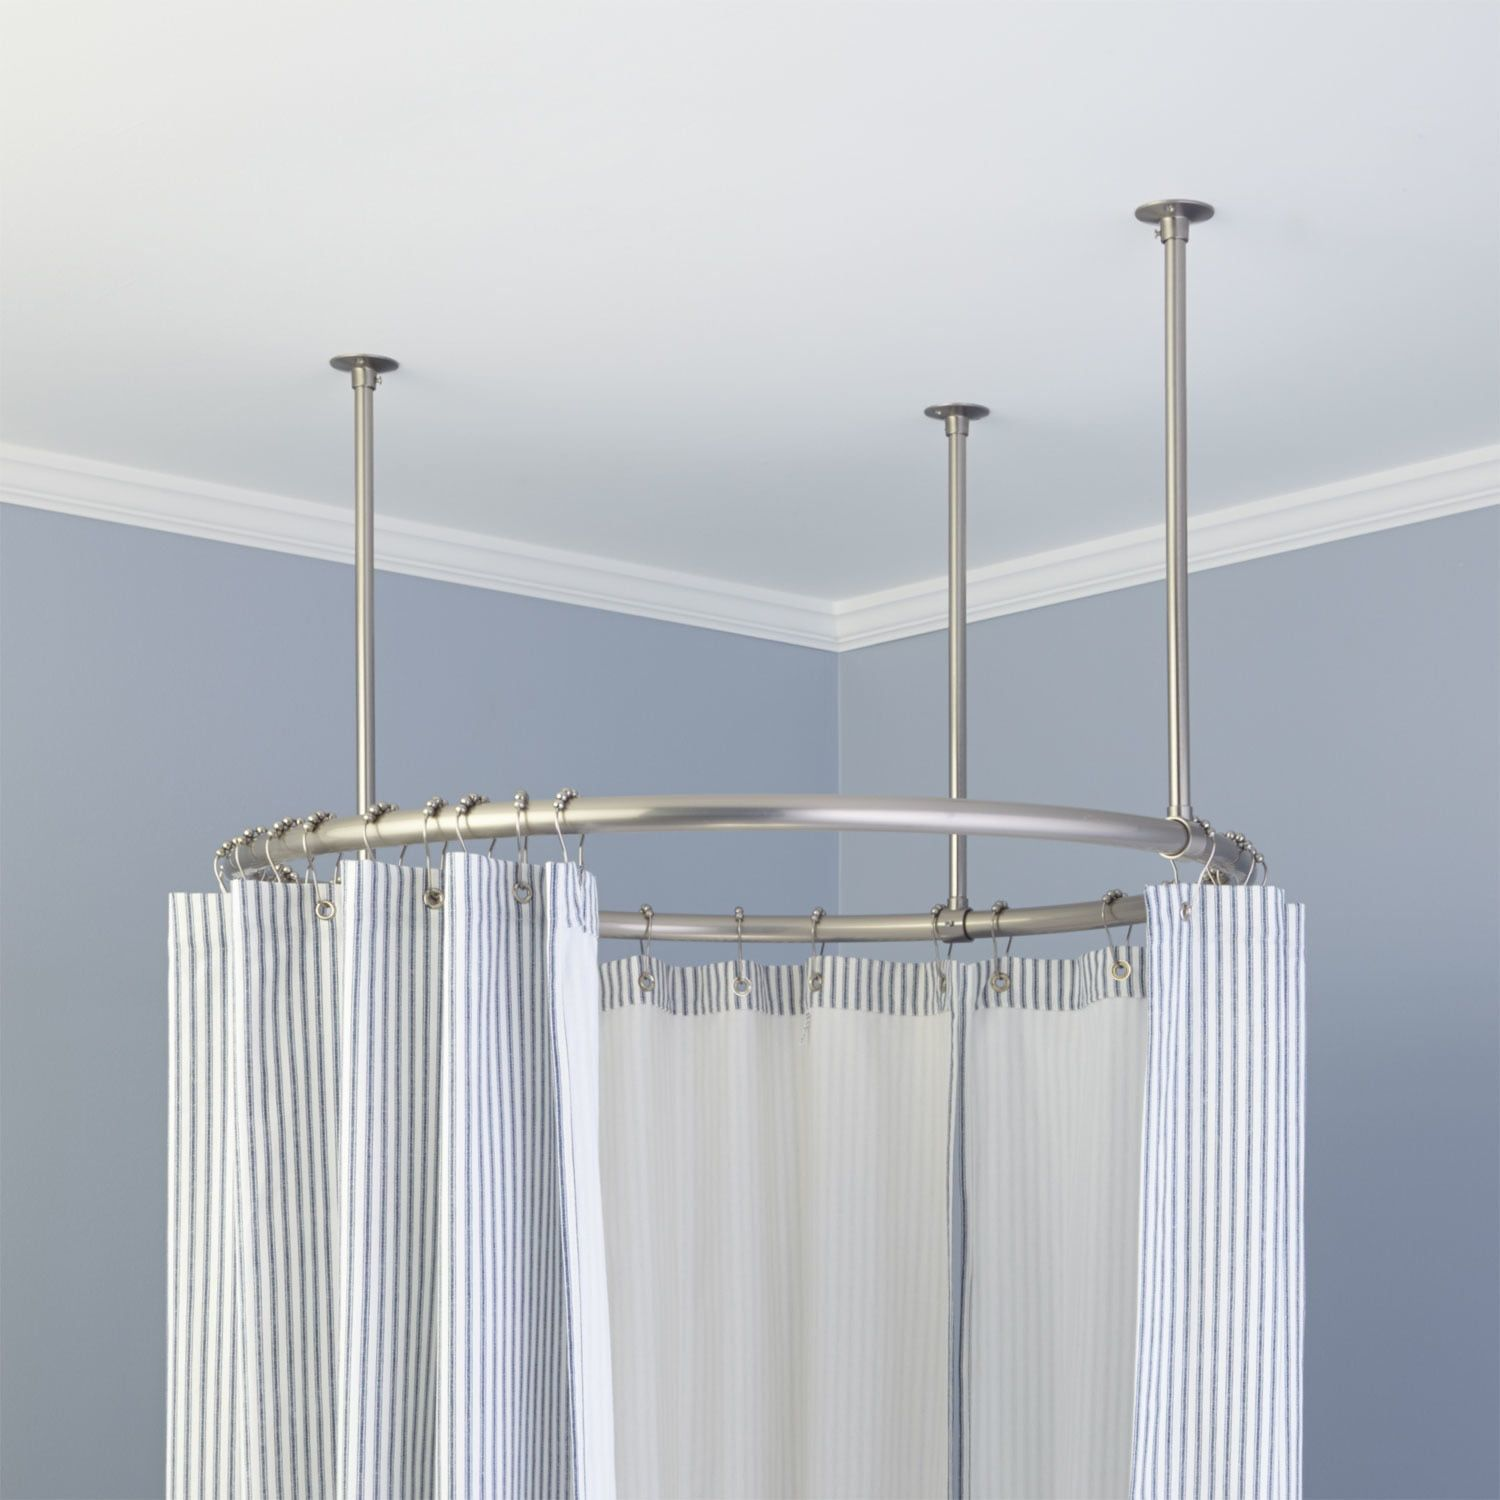 This Round Shower Curtain Rod Is Made Of Corrosion Resistant Brass